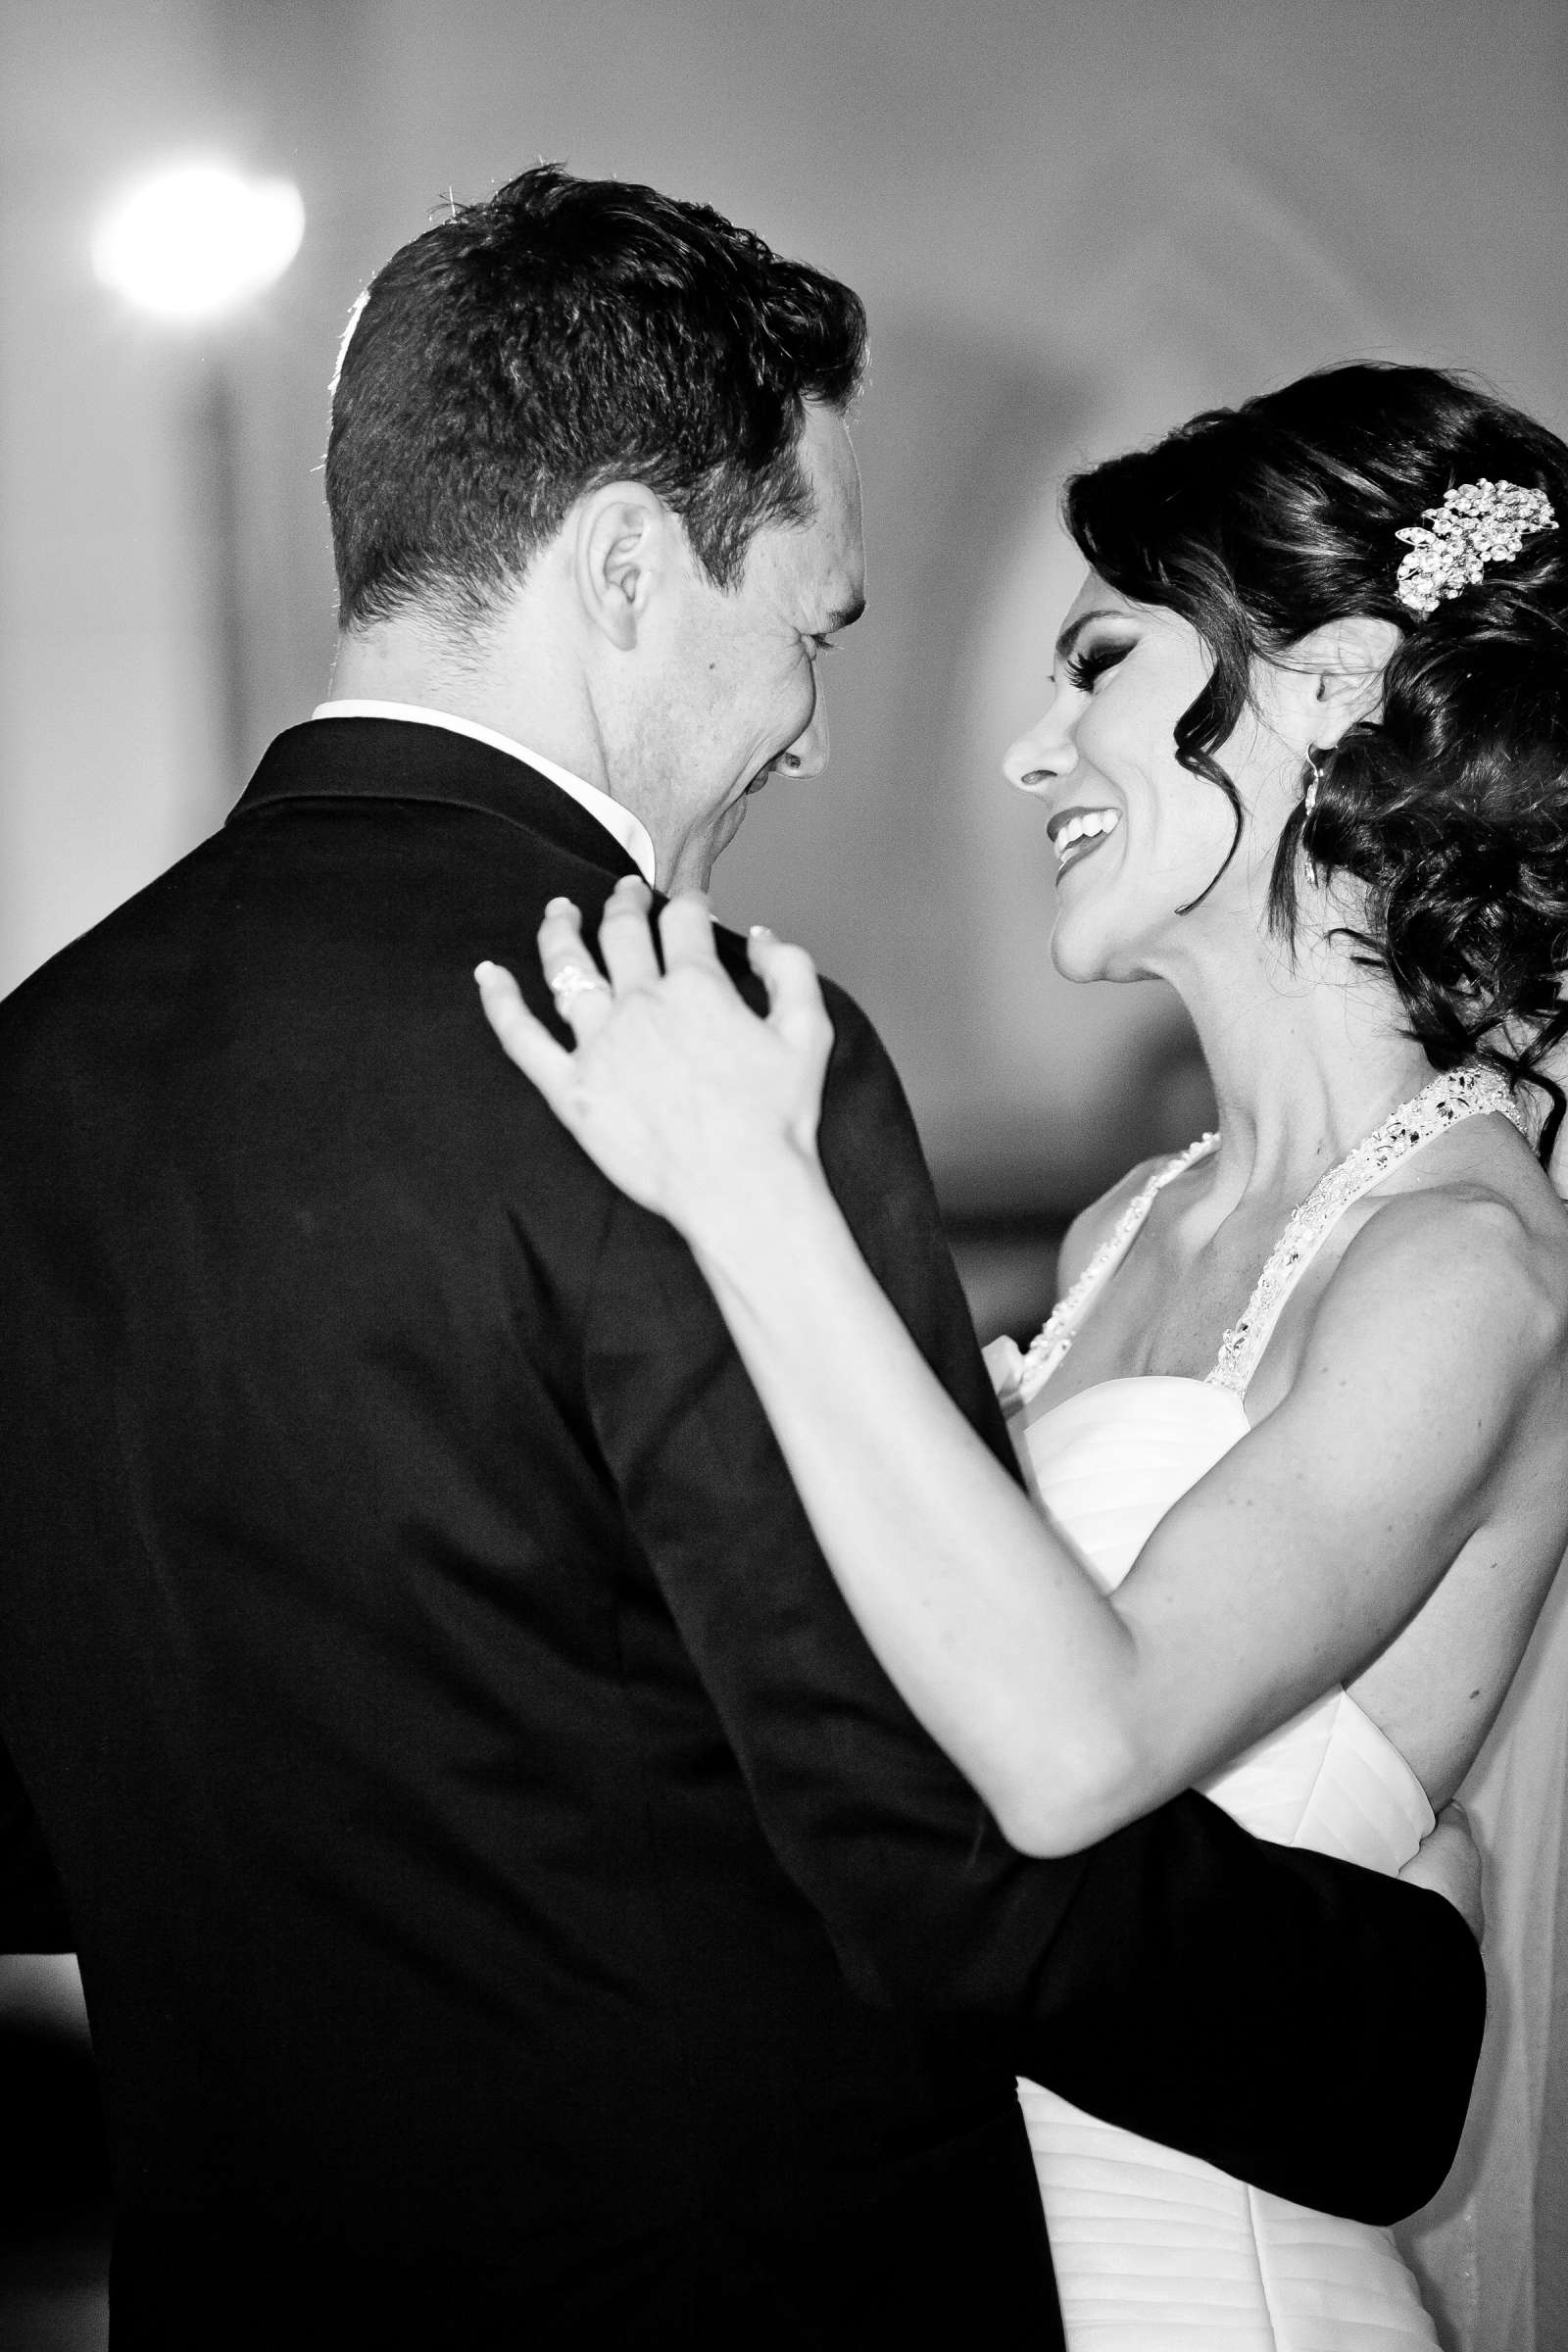 Fairmont Grand Del Mar Wedding, Angela and Tom Wedding Photo #42 by True Photography